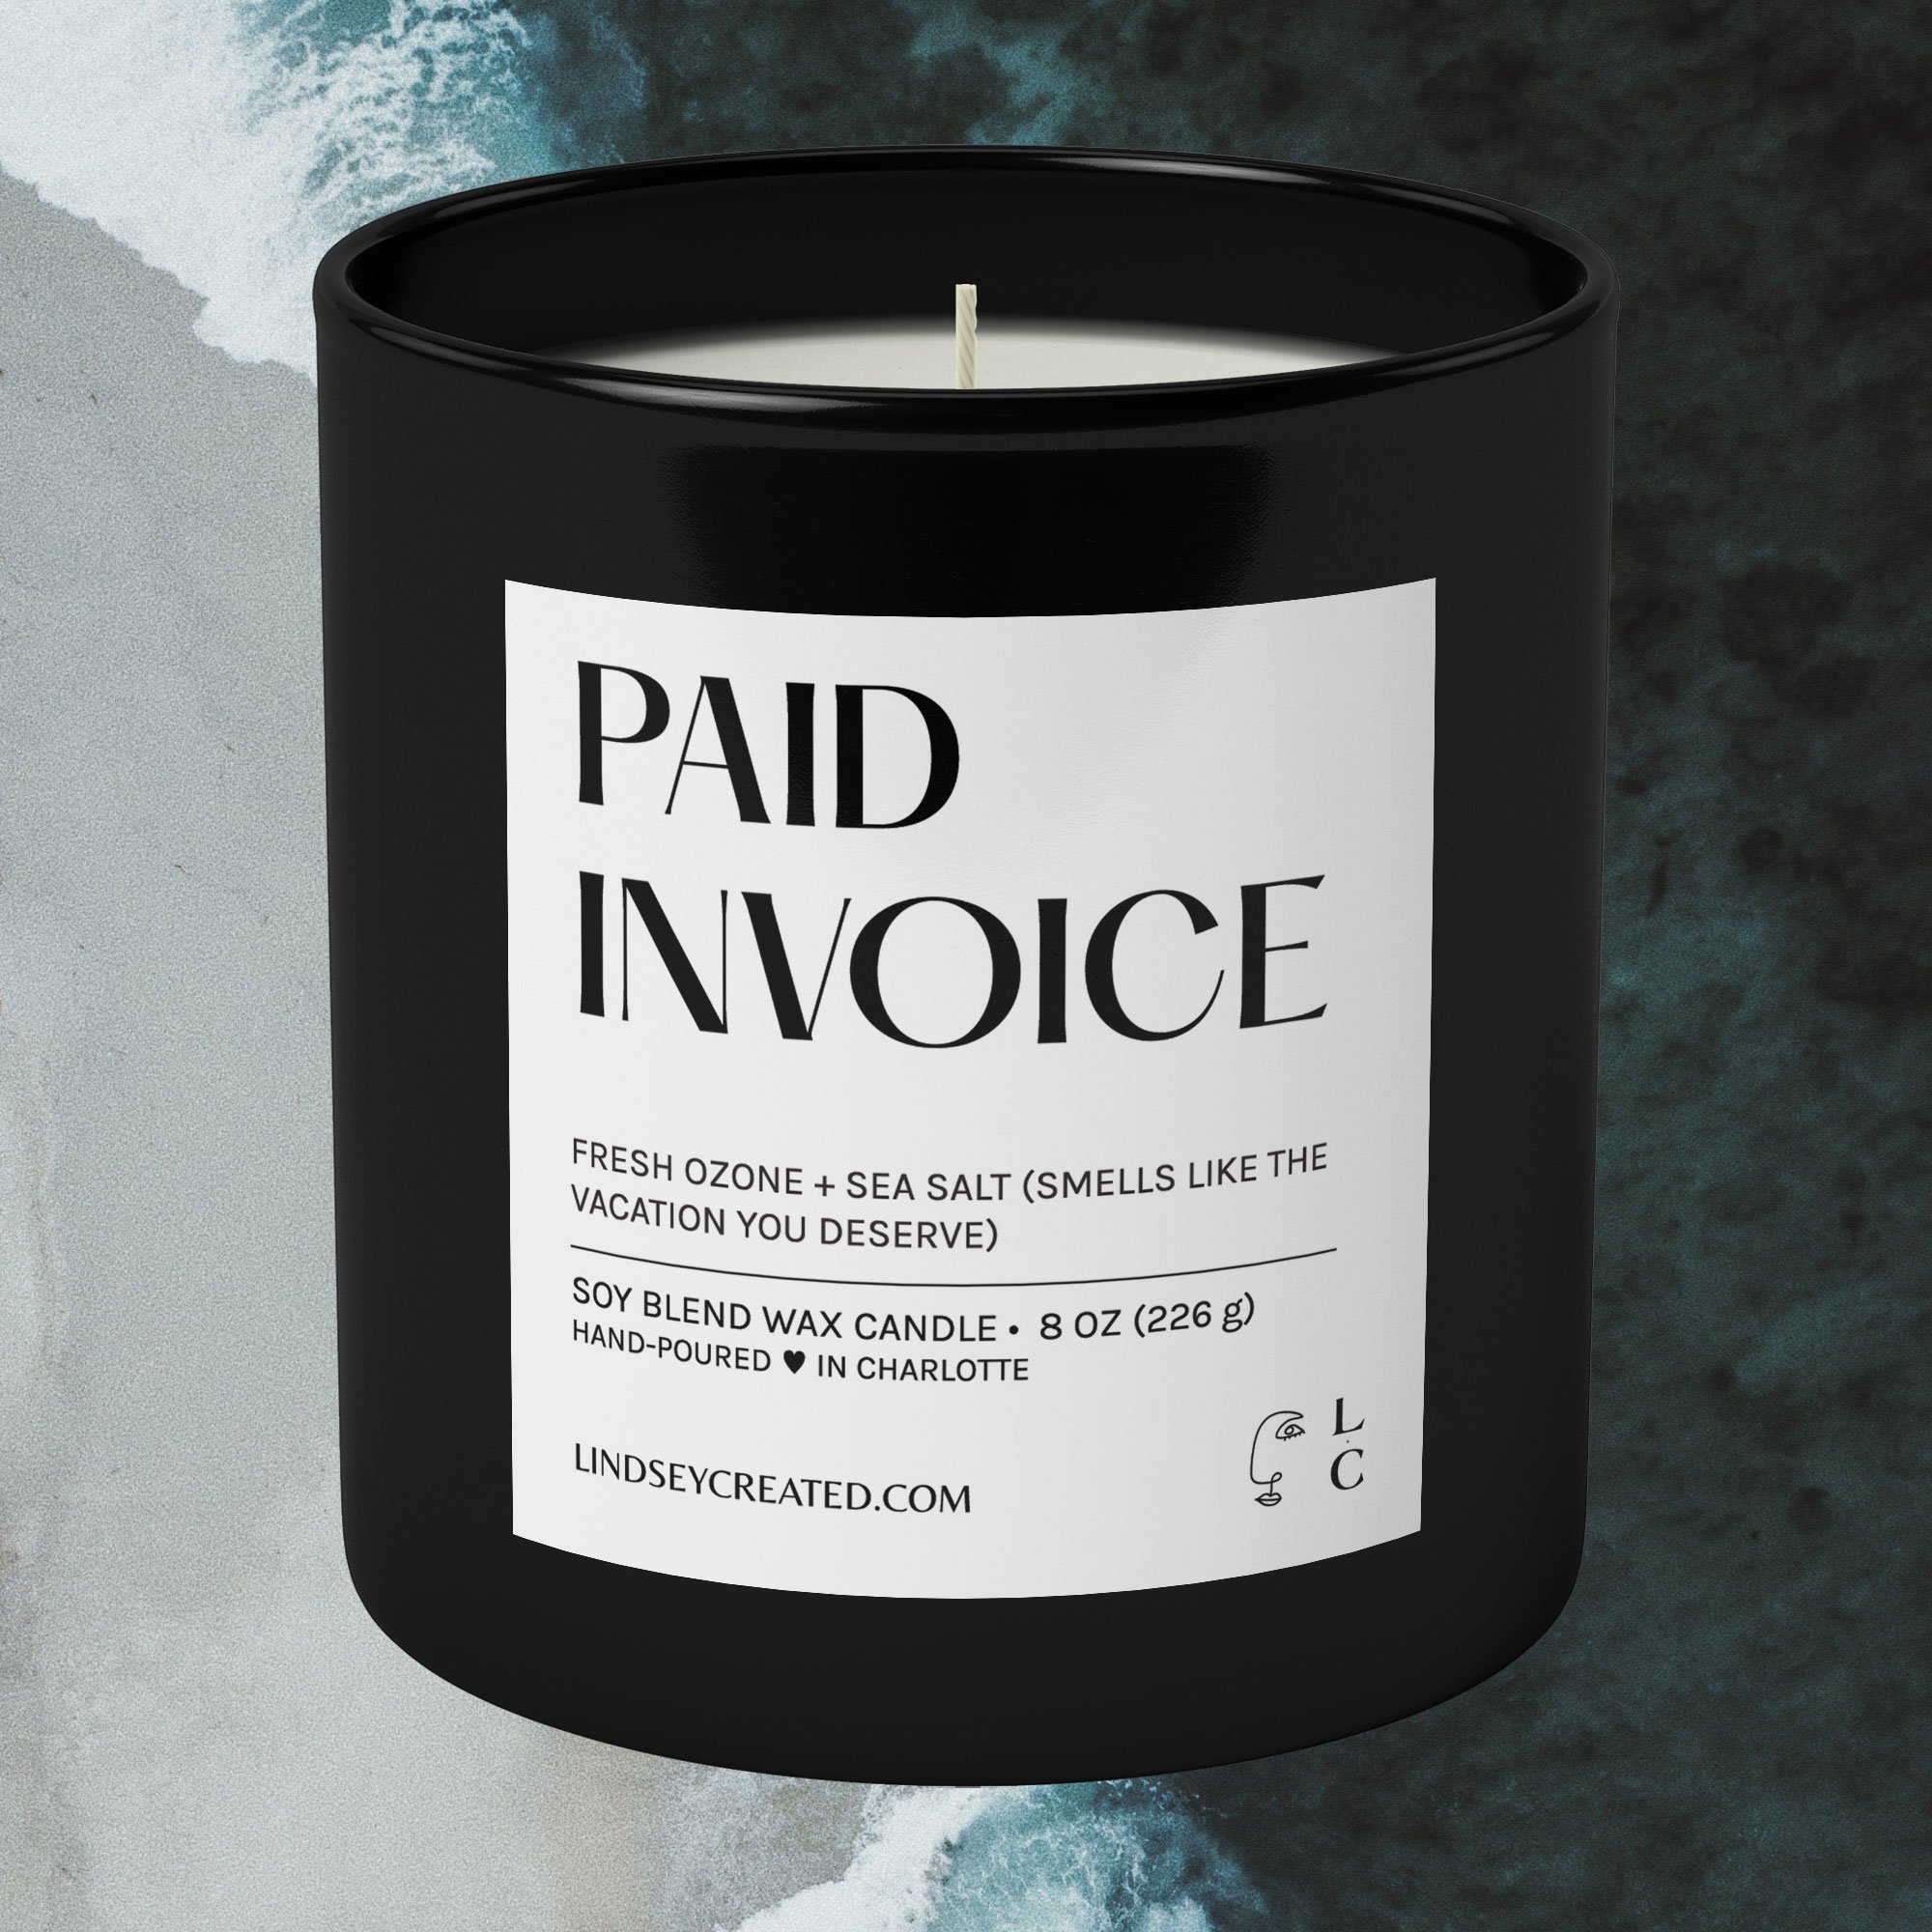 Paid Invoice Candle | 8oz Soy Blend